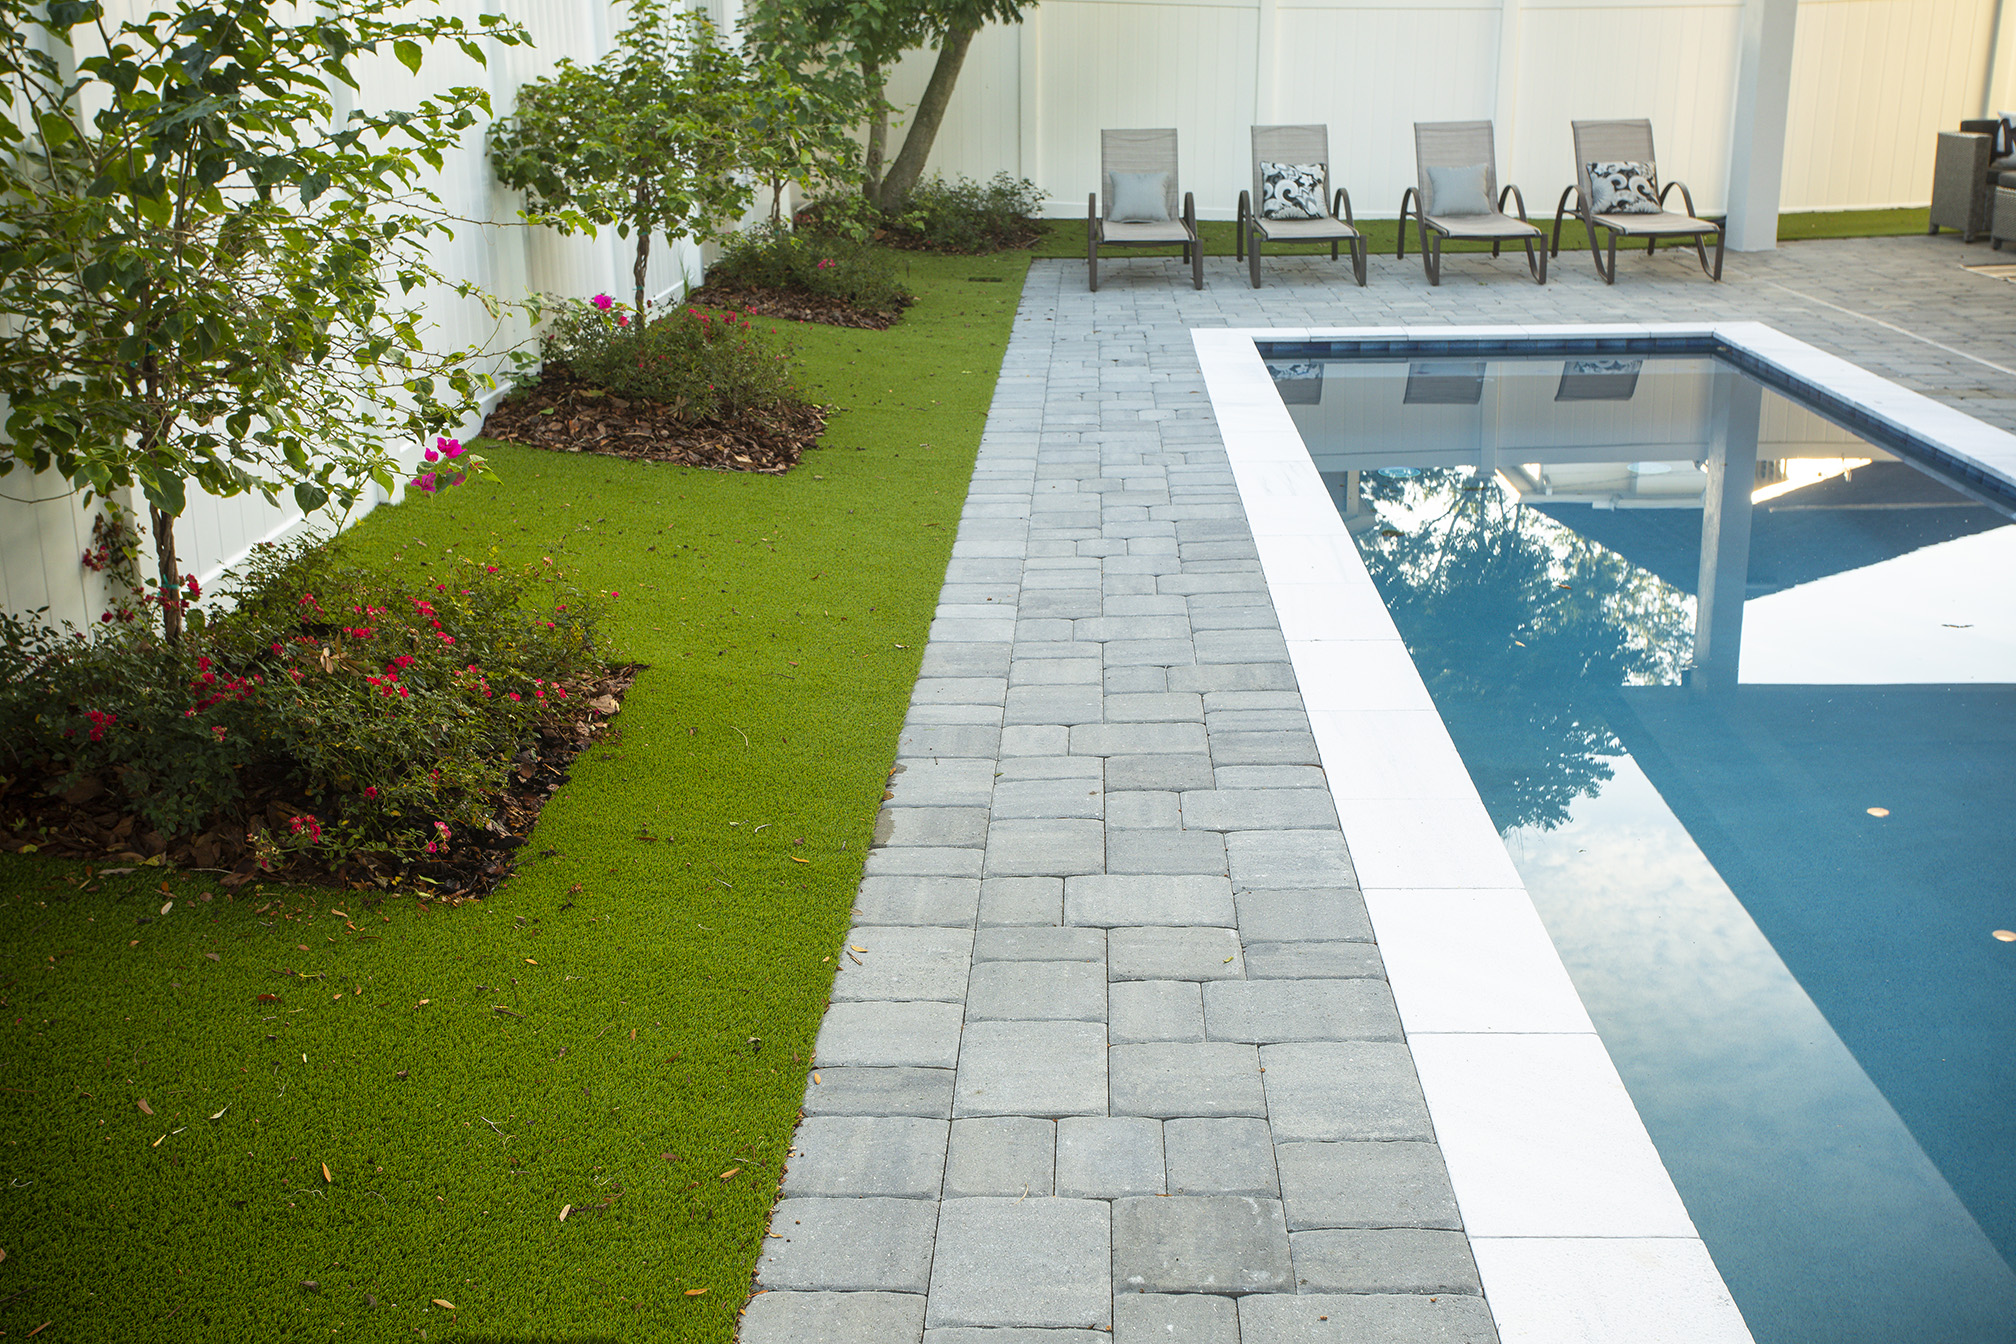 Mulching landscaping beds around a pool